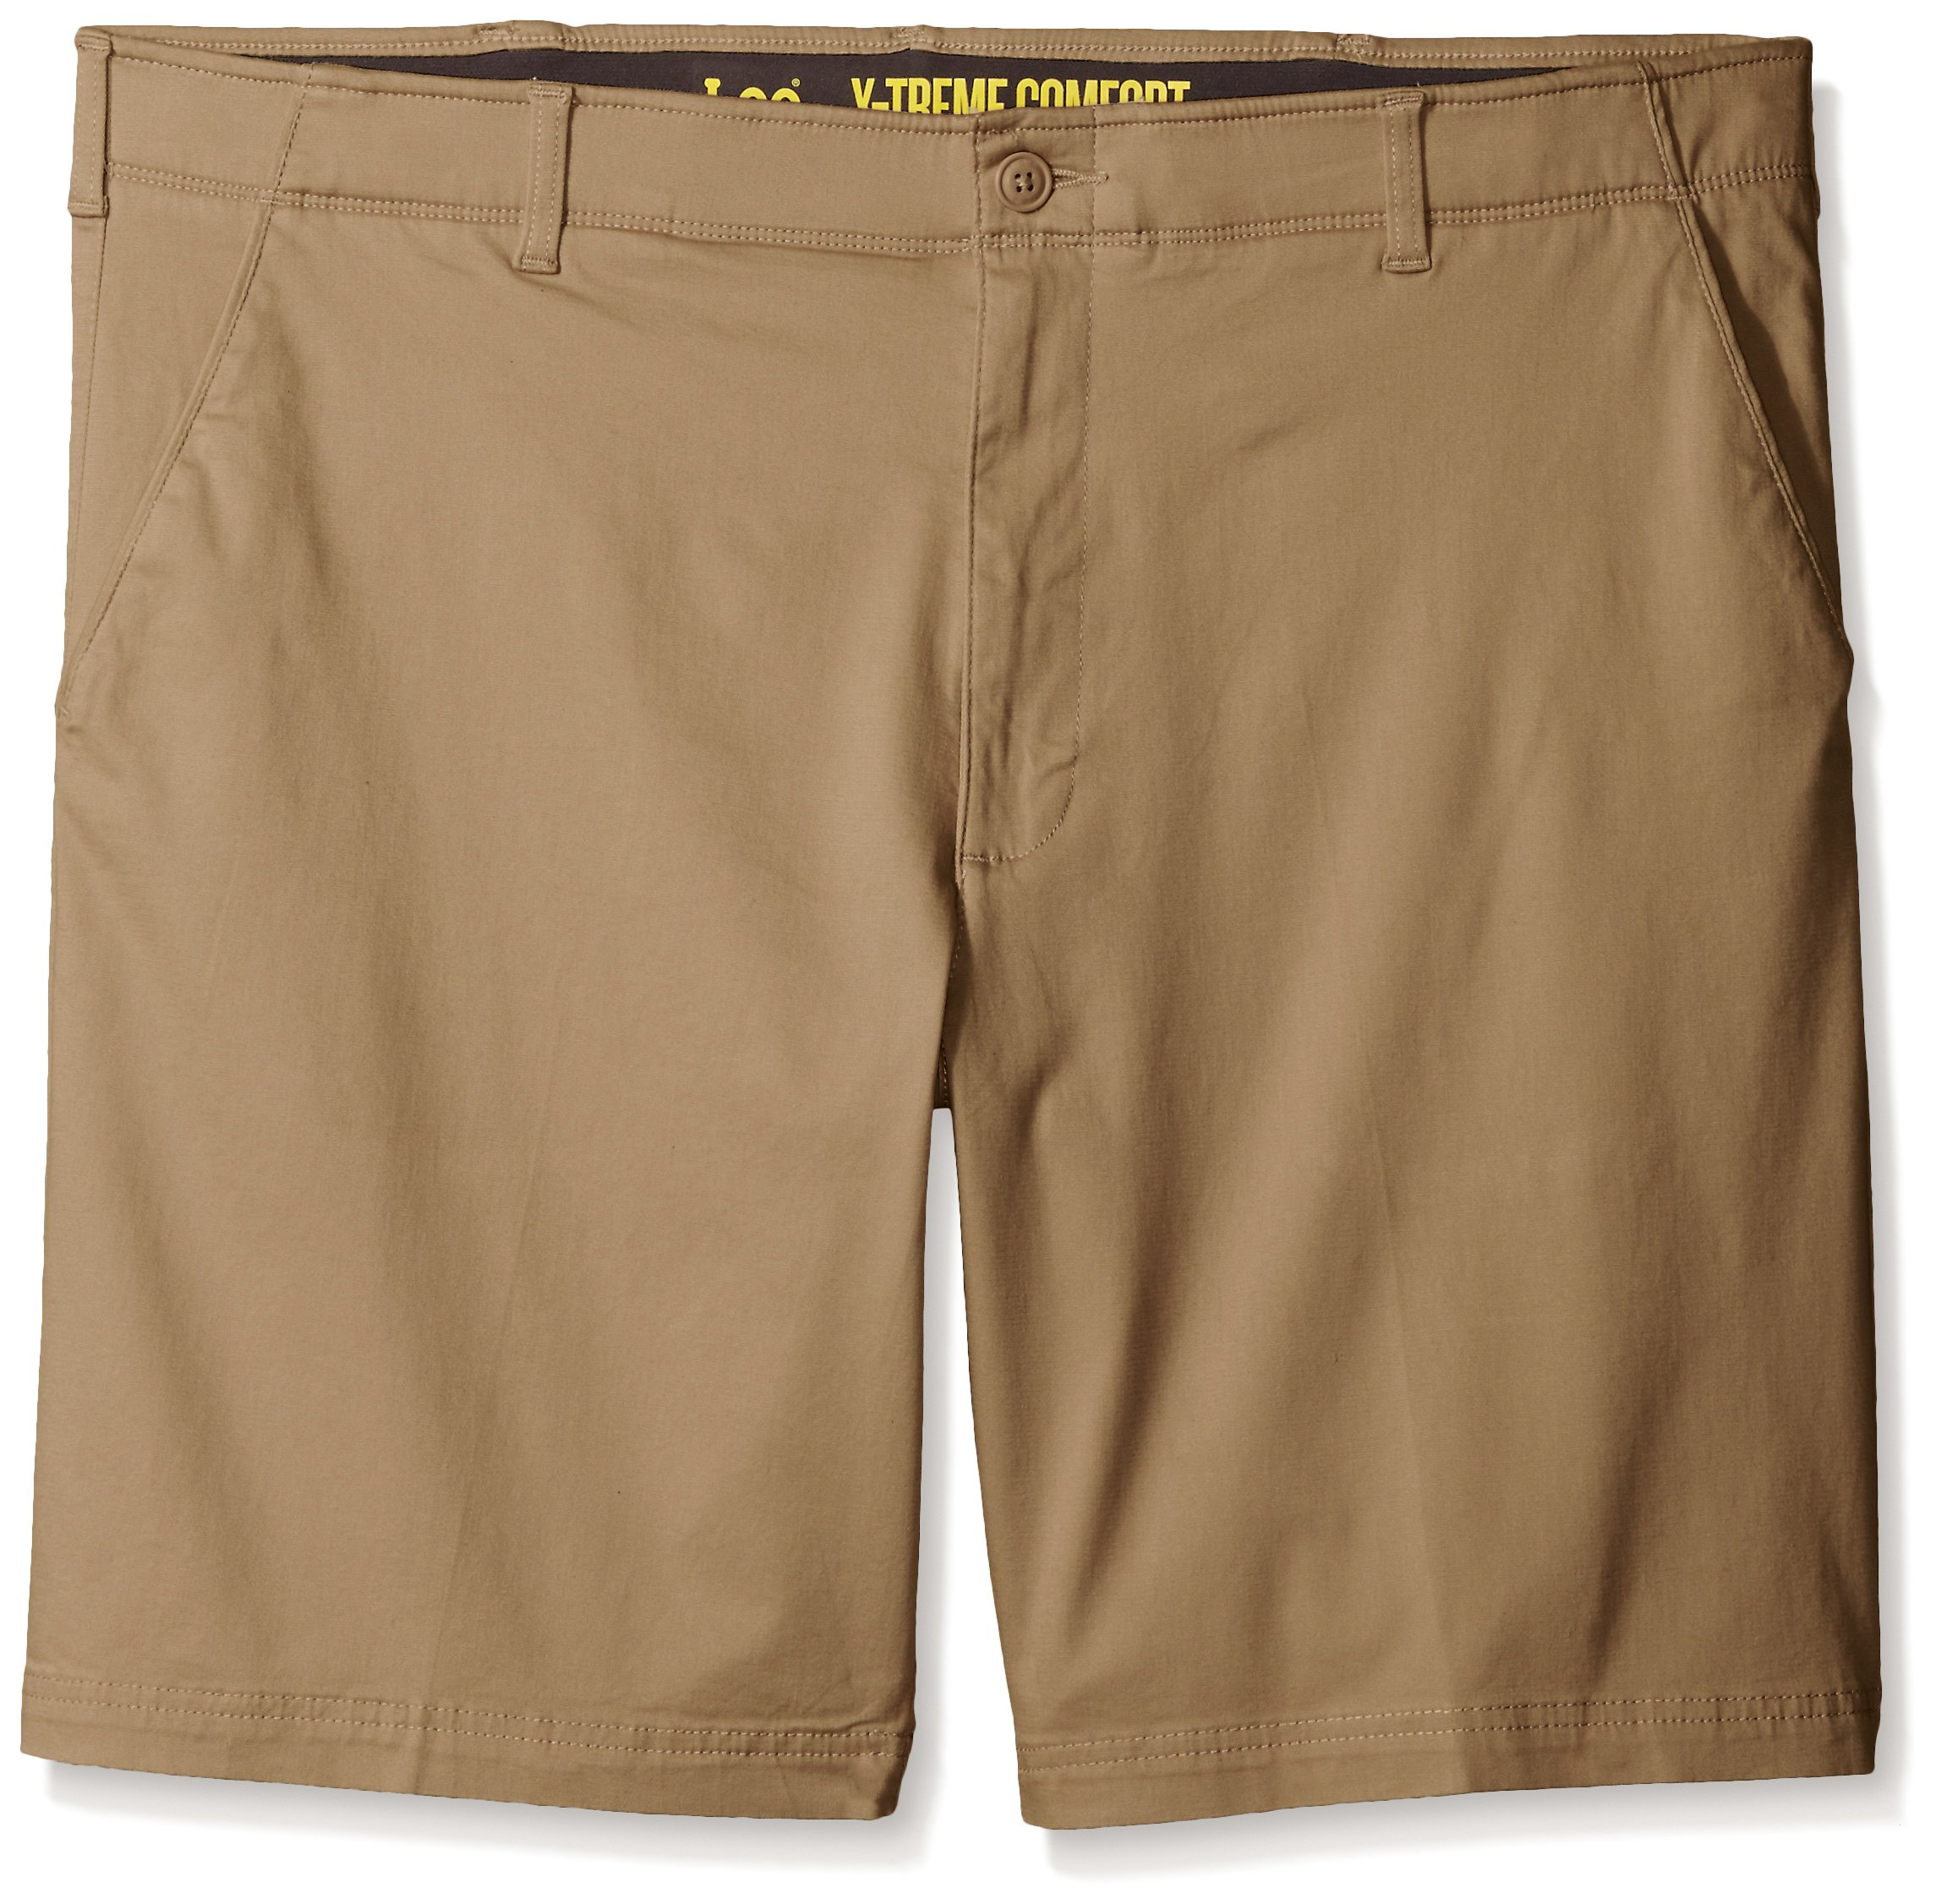 LEE Men's Big-Tall Performance Series Extreme Comfort Short, Original Khaki, 46